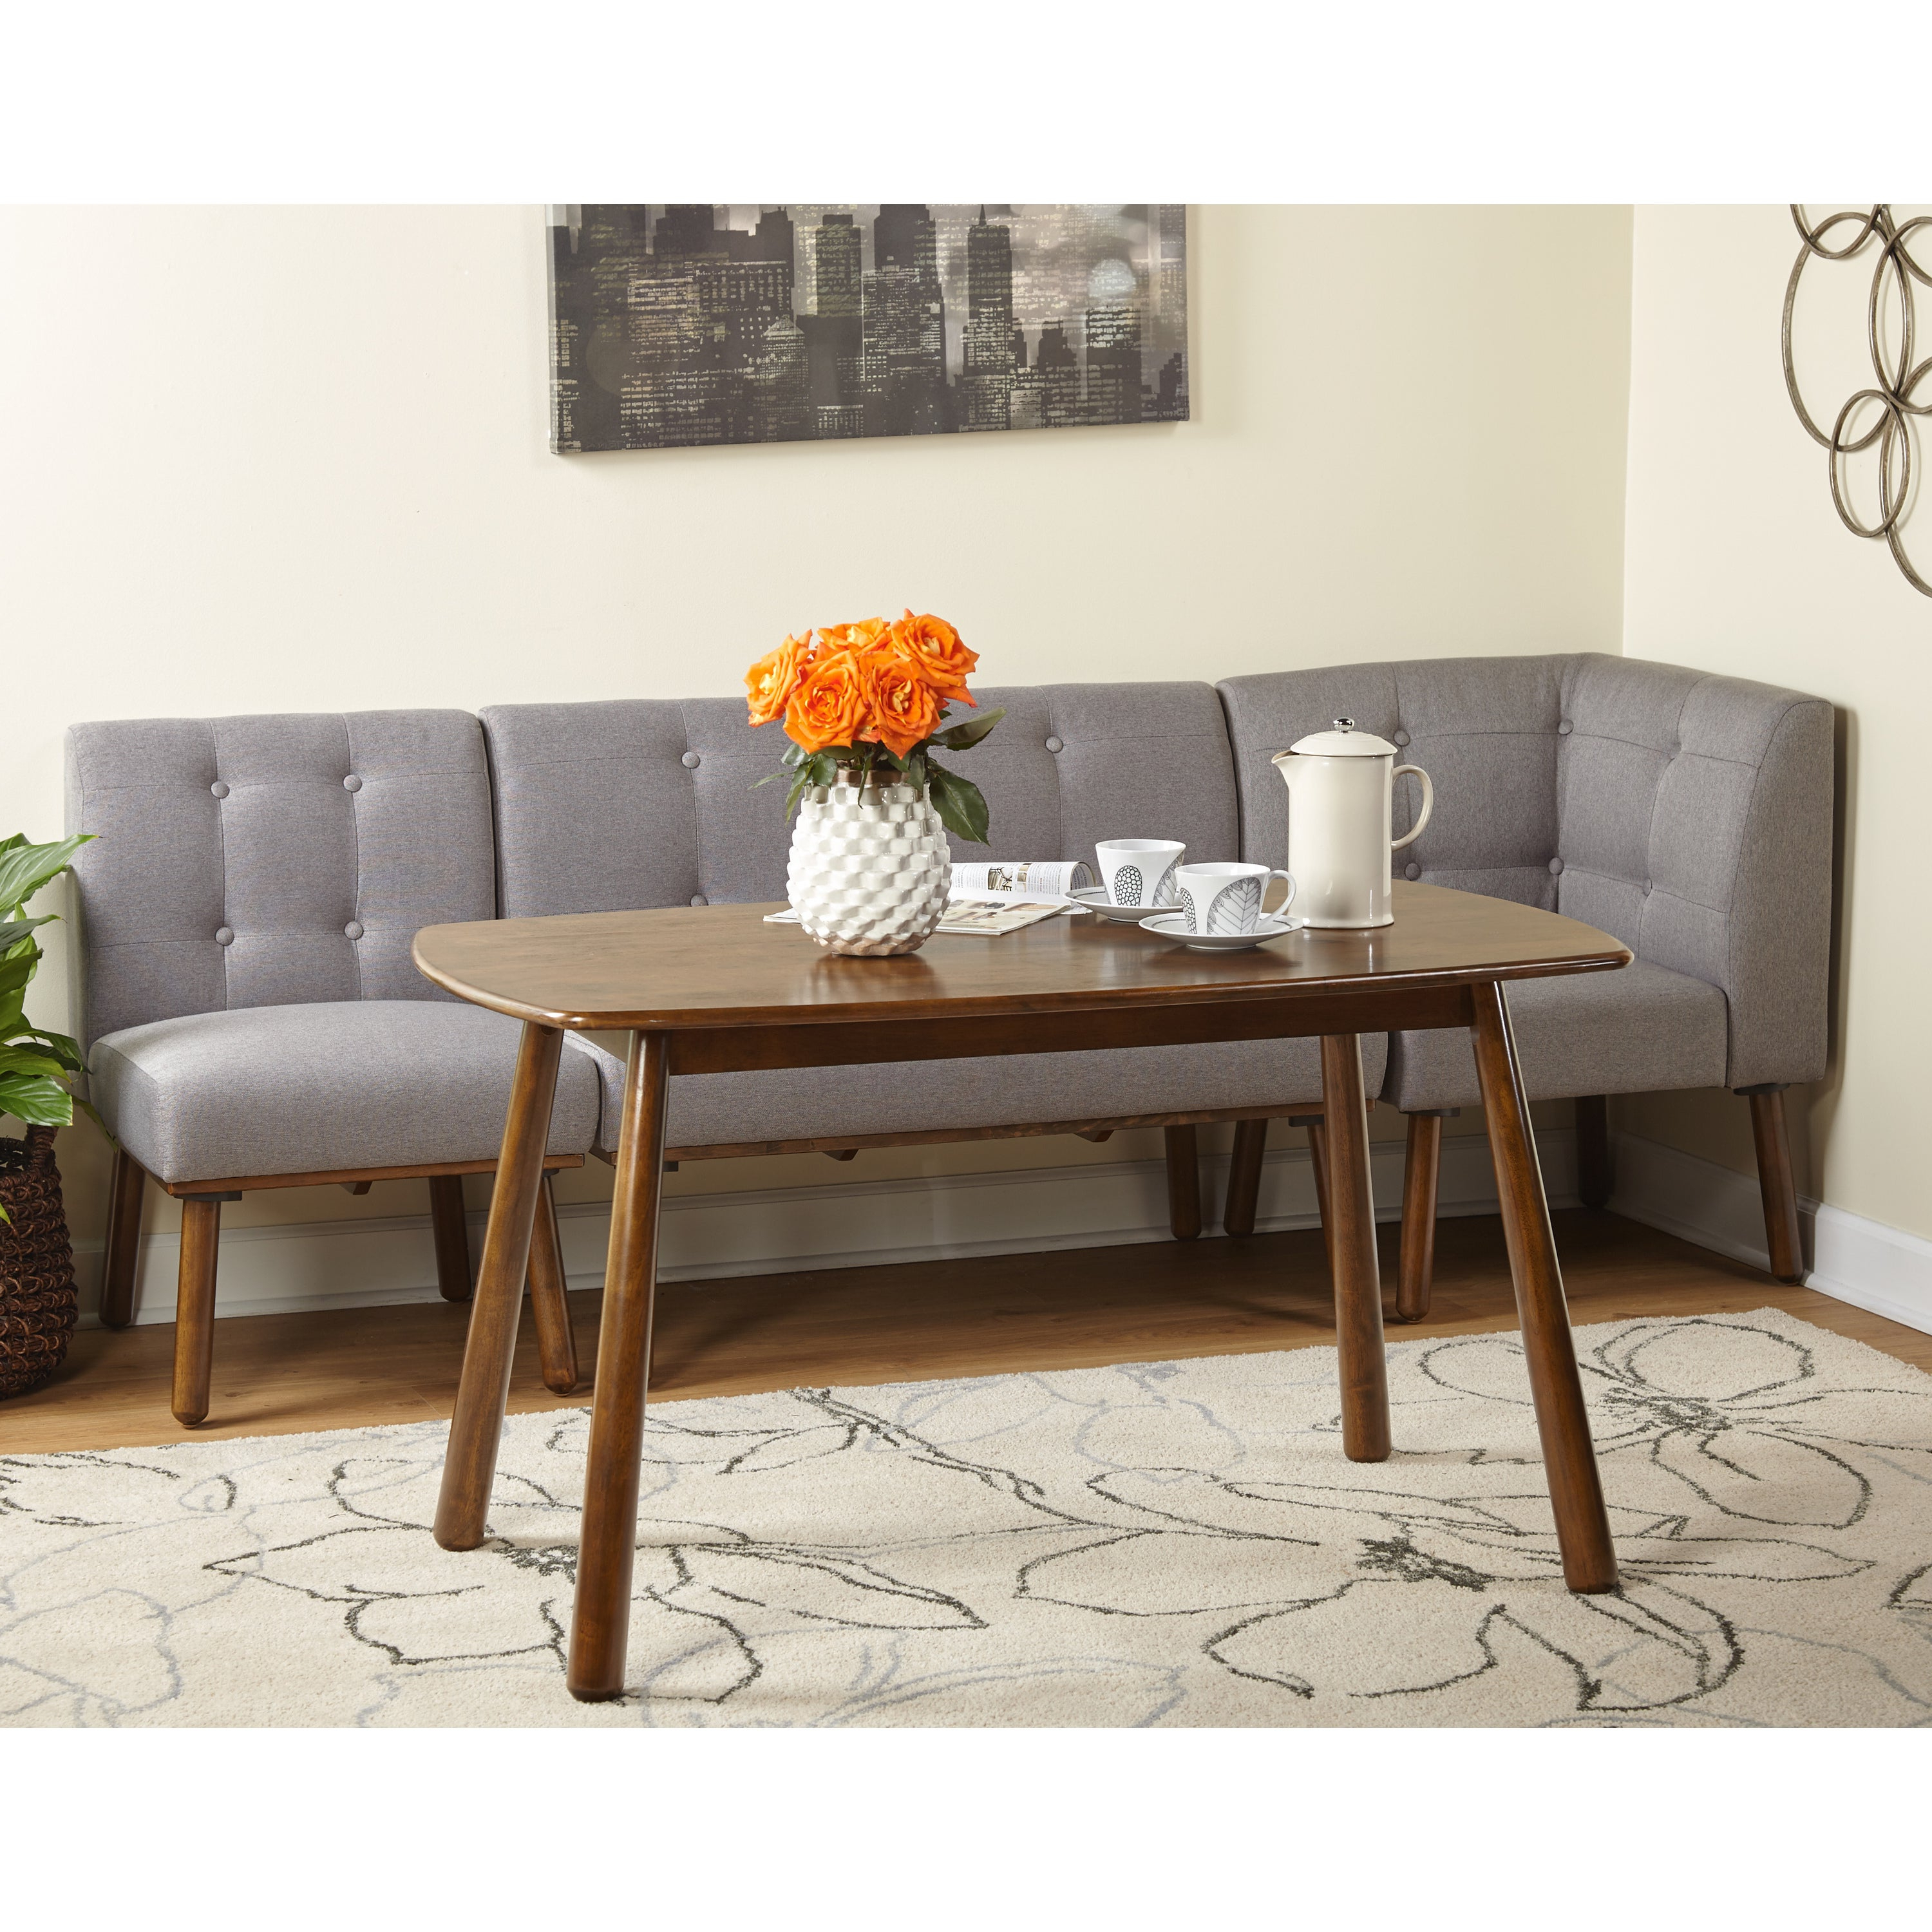 Well Liked Shop Simple Living 4 Piece Playmate Nook Dining Set – On Sale – Free With Regard To Maloney 3 Piece Breakfast Nook Dining Sets (View 6 of 25)